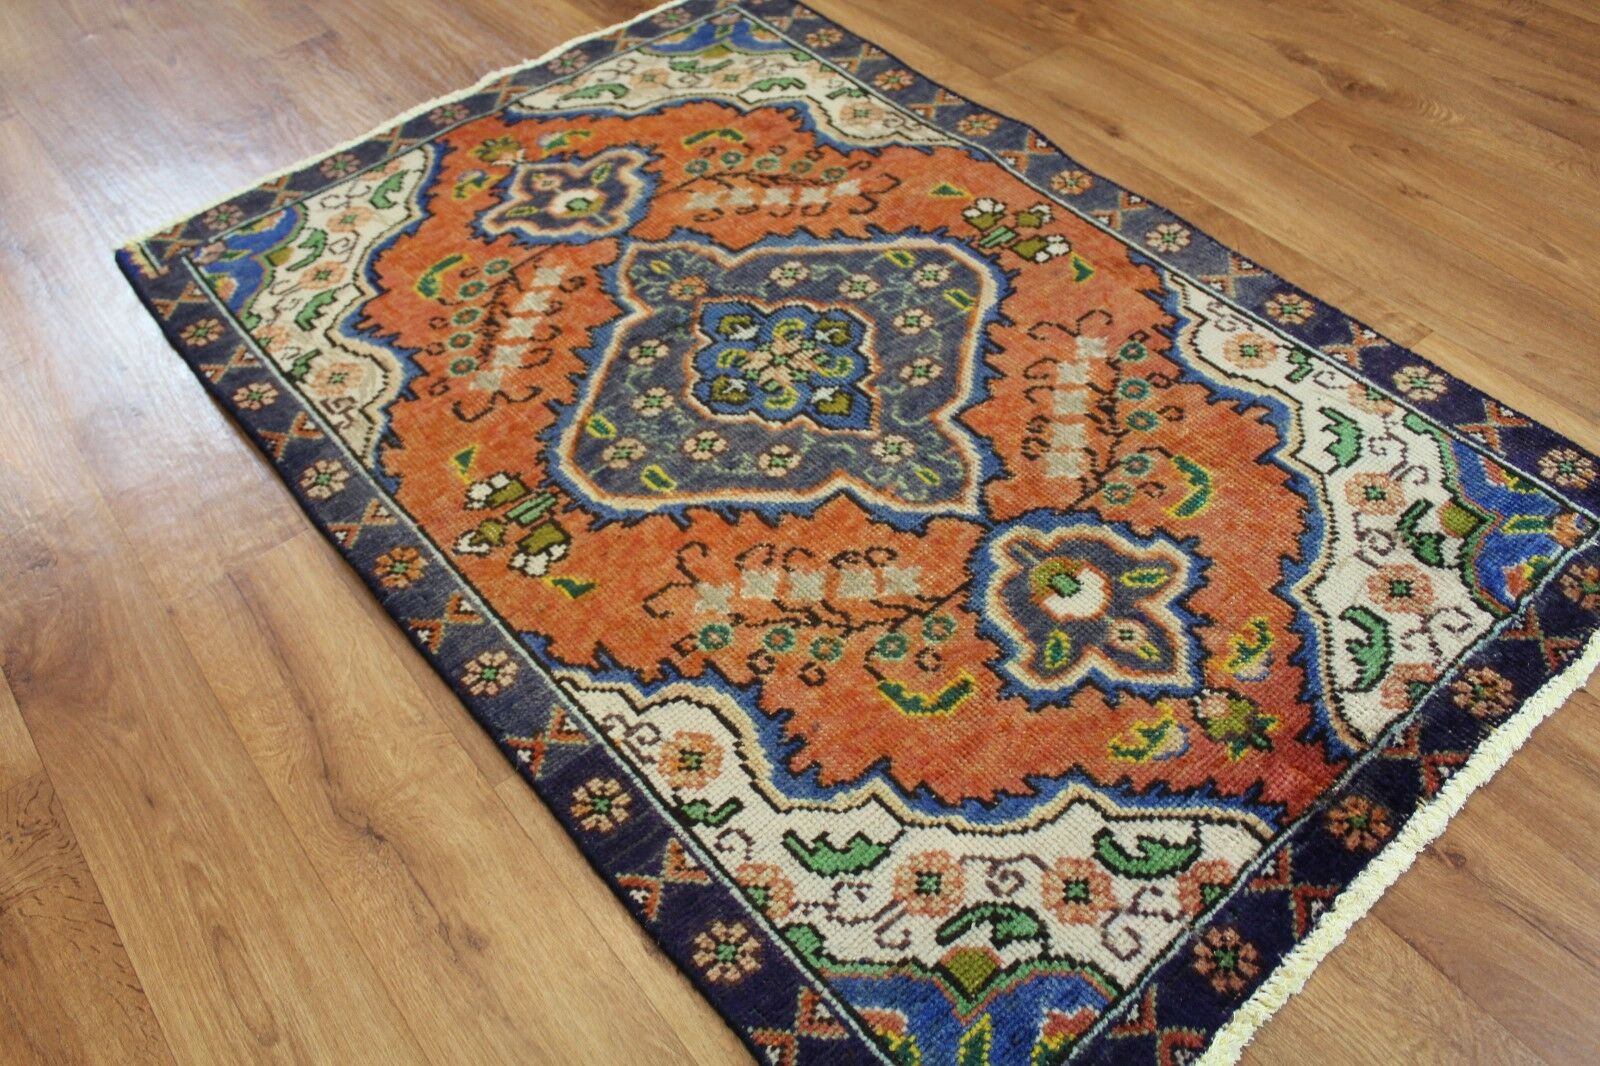 OLD OLD OLD WOOL HAND MADE  ORIENTAL FLORAL RUNNER AREA RUG CARPET 140 X 93 CM 0114b8